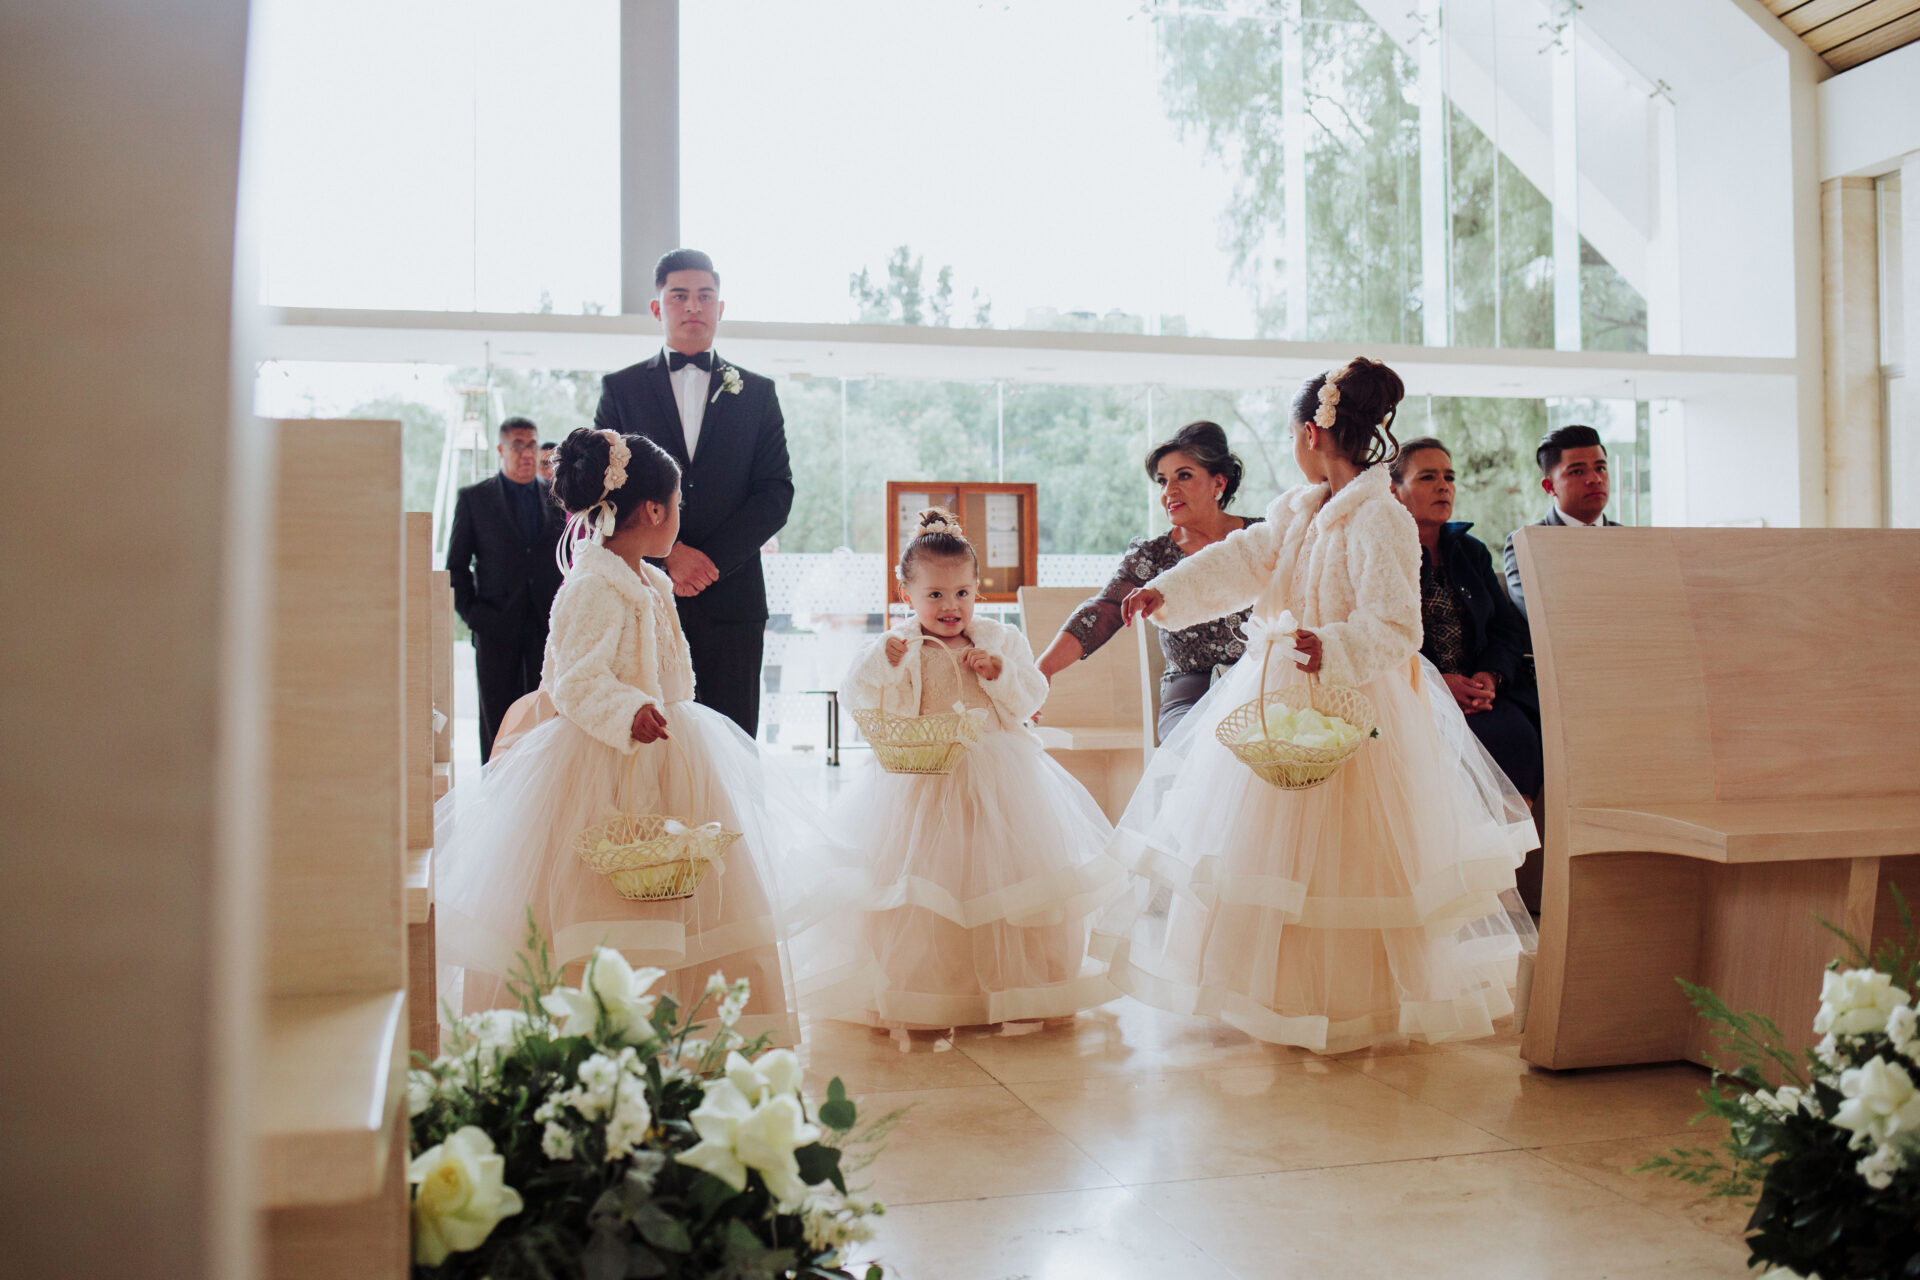 javier_noriega_fotografo_Boda_san_ramon_zacatecas_wedding_photographer4